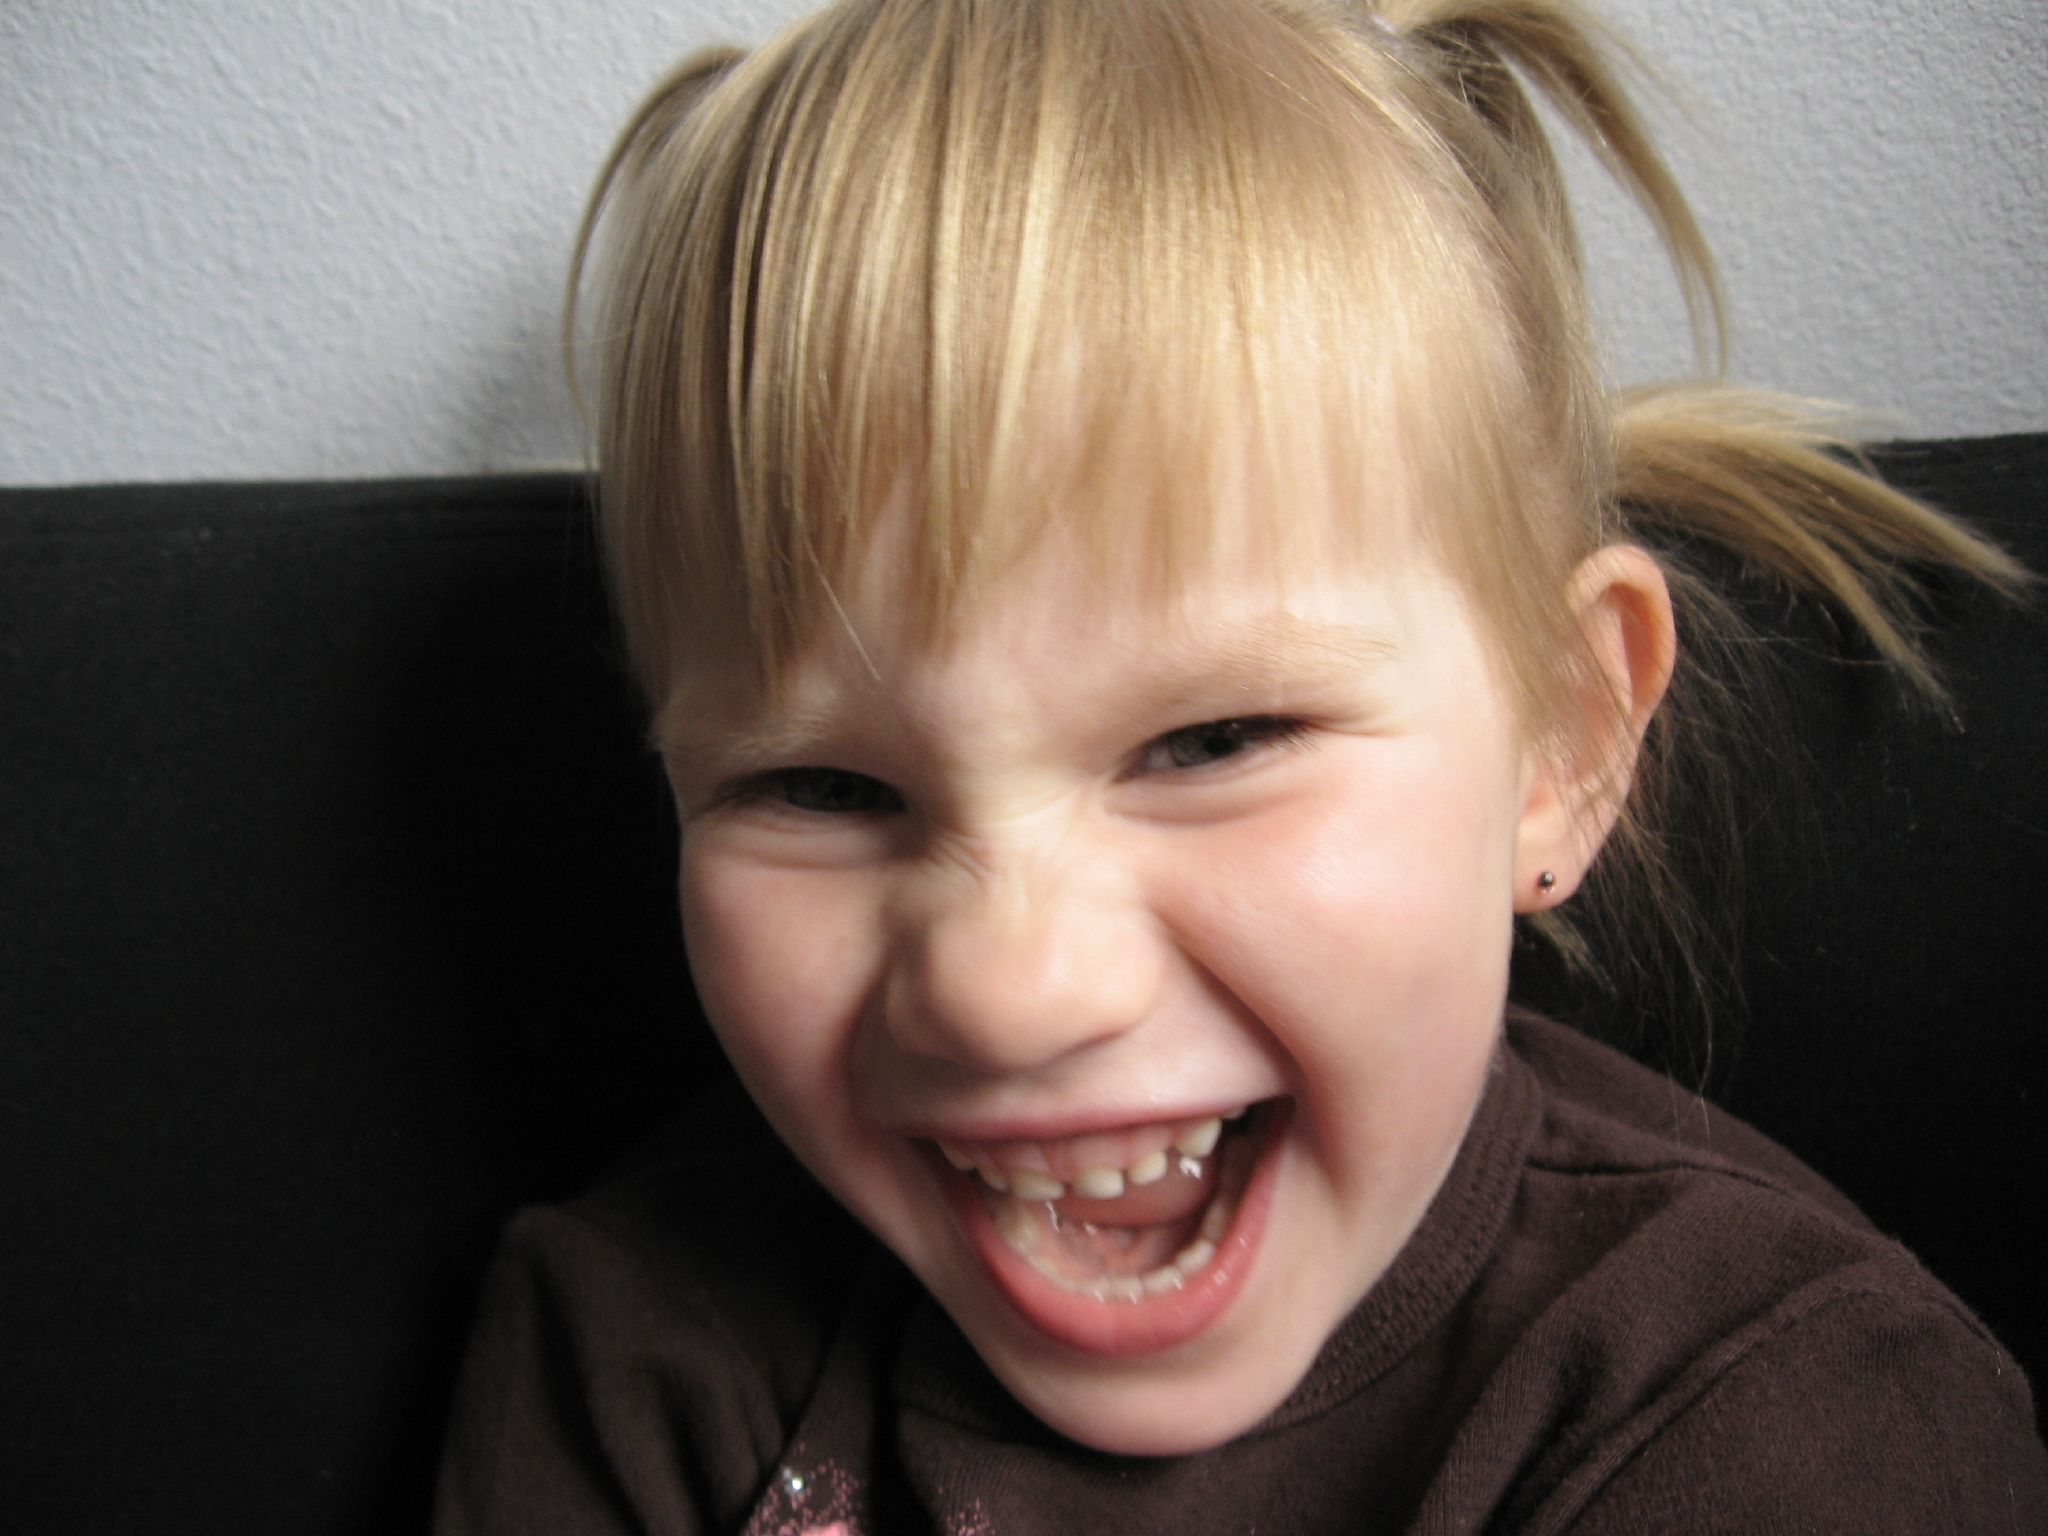 Blond-haired girl, mouth wide, grins at camera, her eyes almost closed, upper teeth showing.